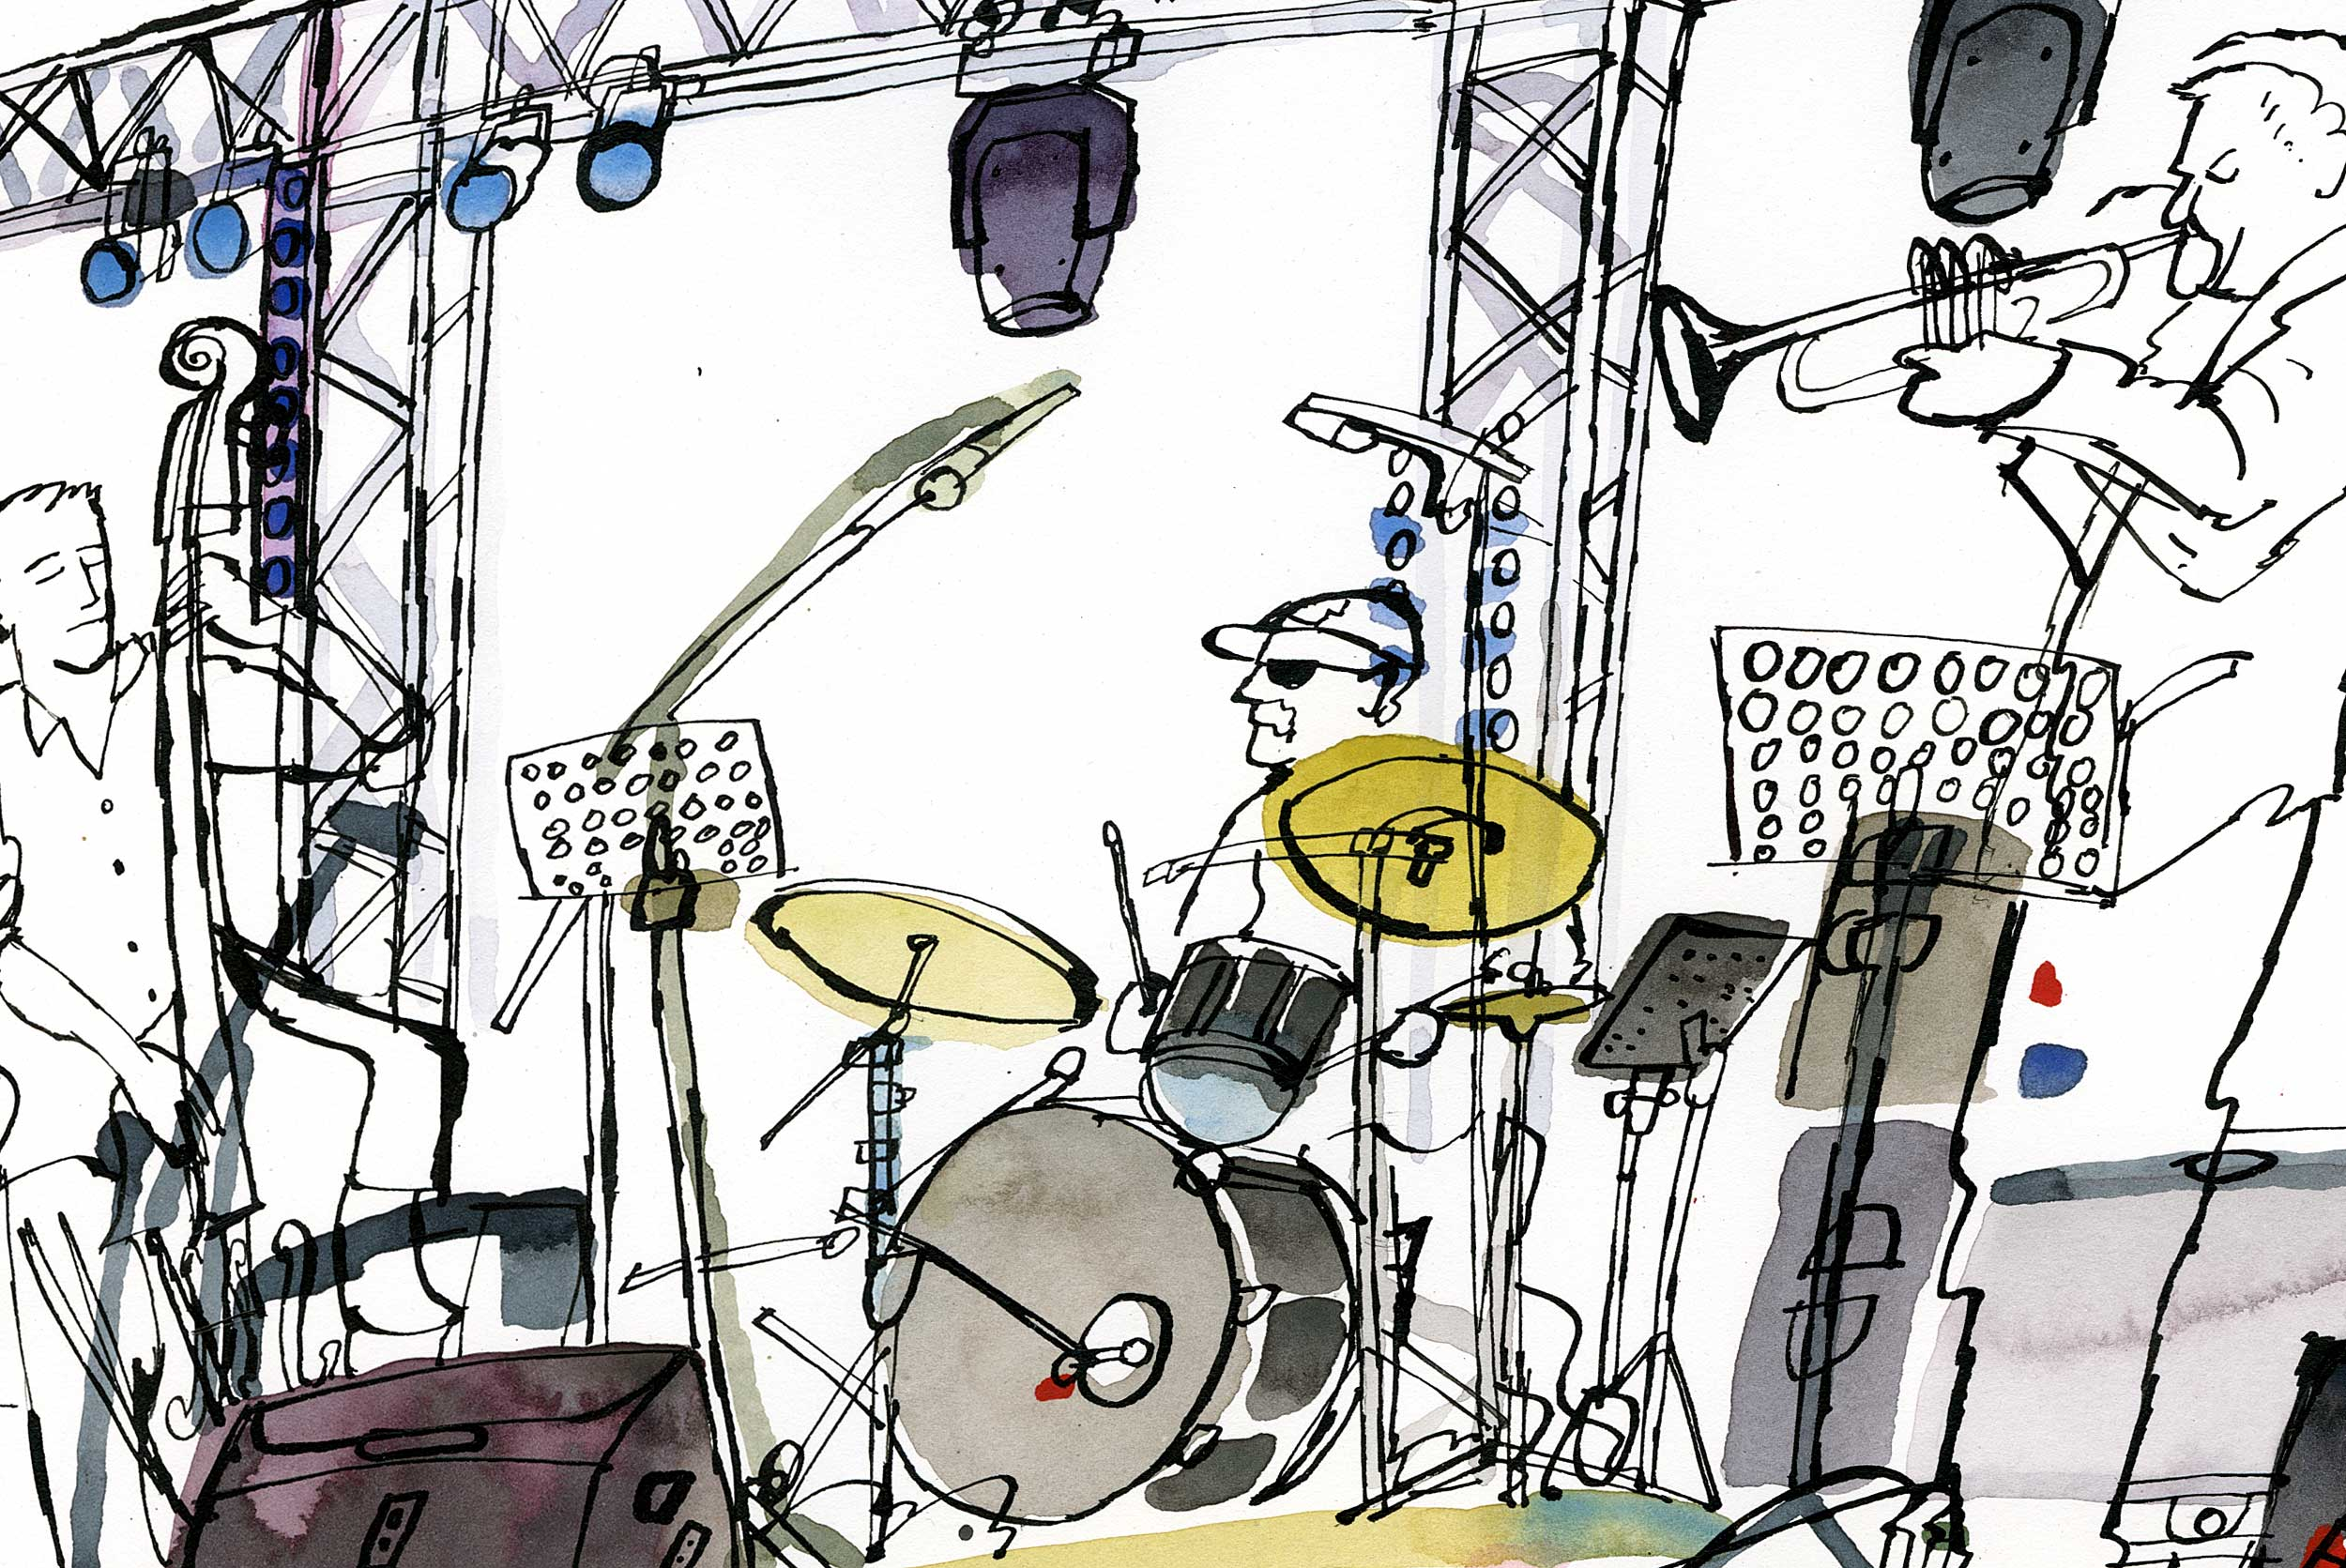 Ealing Jazz Festival by James Oses, image 2